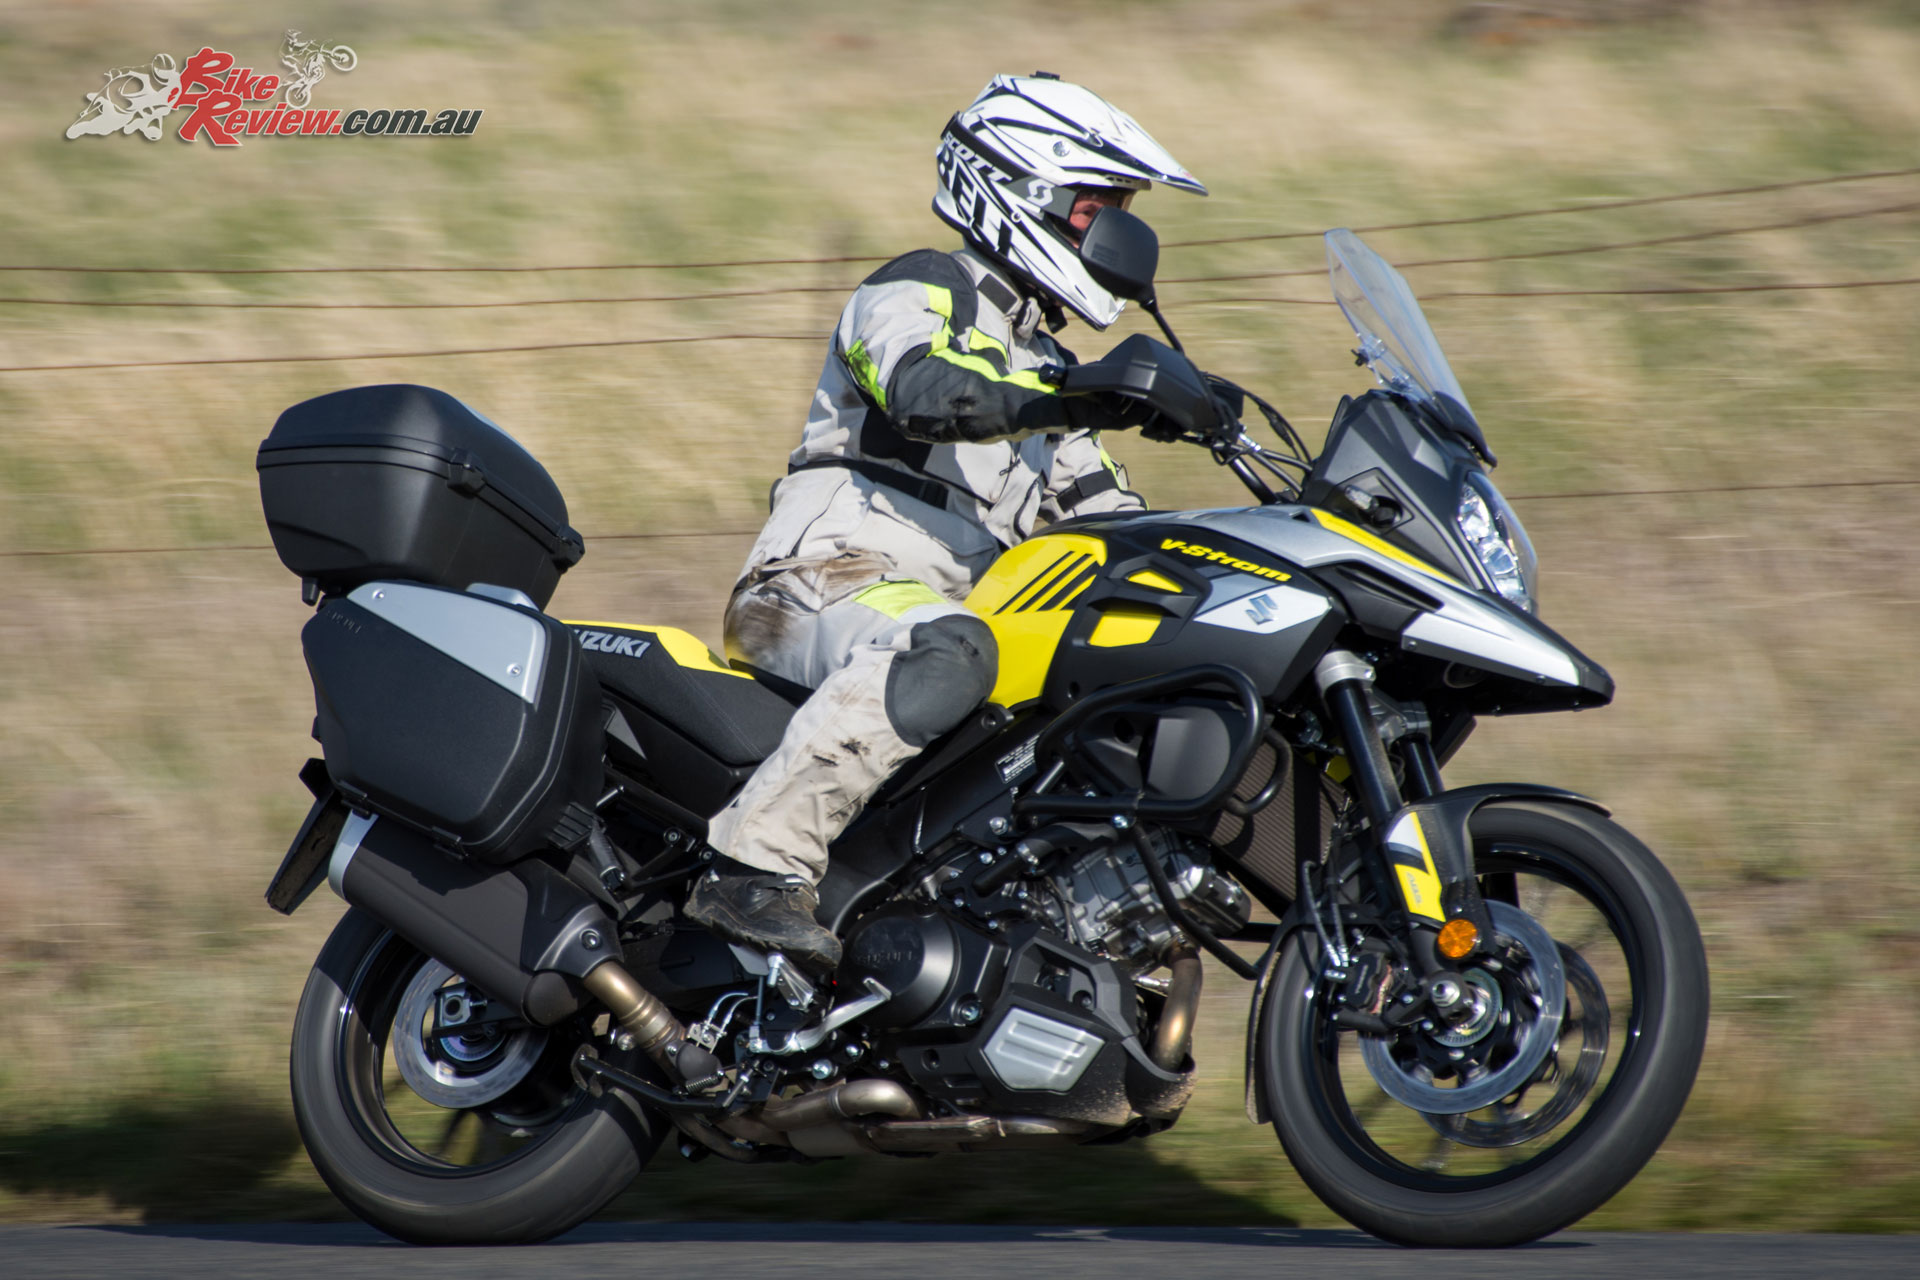 2018 suzuki v strom 1000 bonus accessory deal bike review. Black Bedroom Furniture Sets. Home Design Ideas